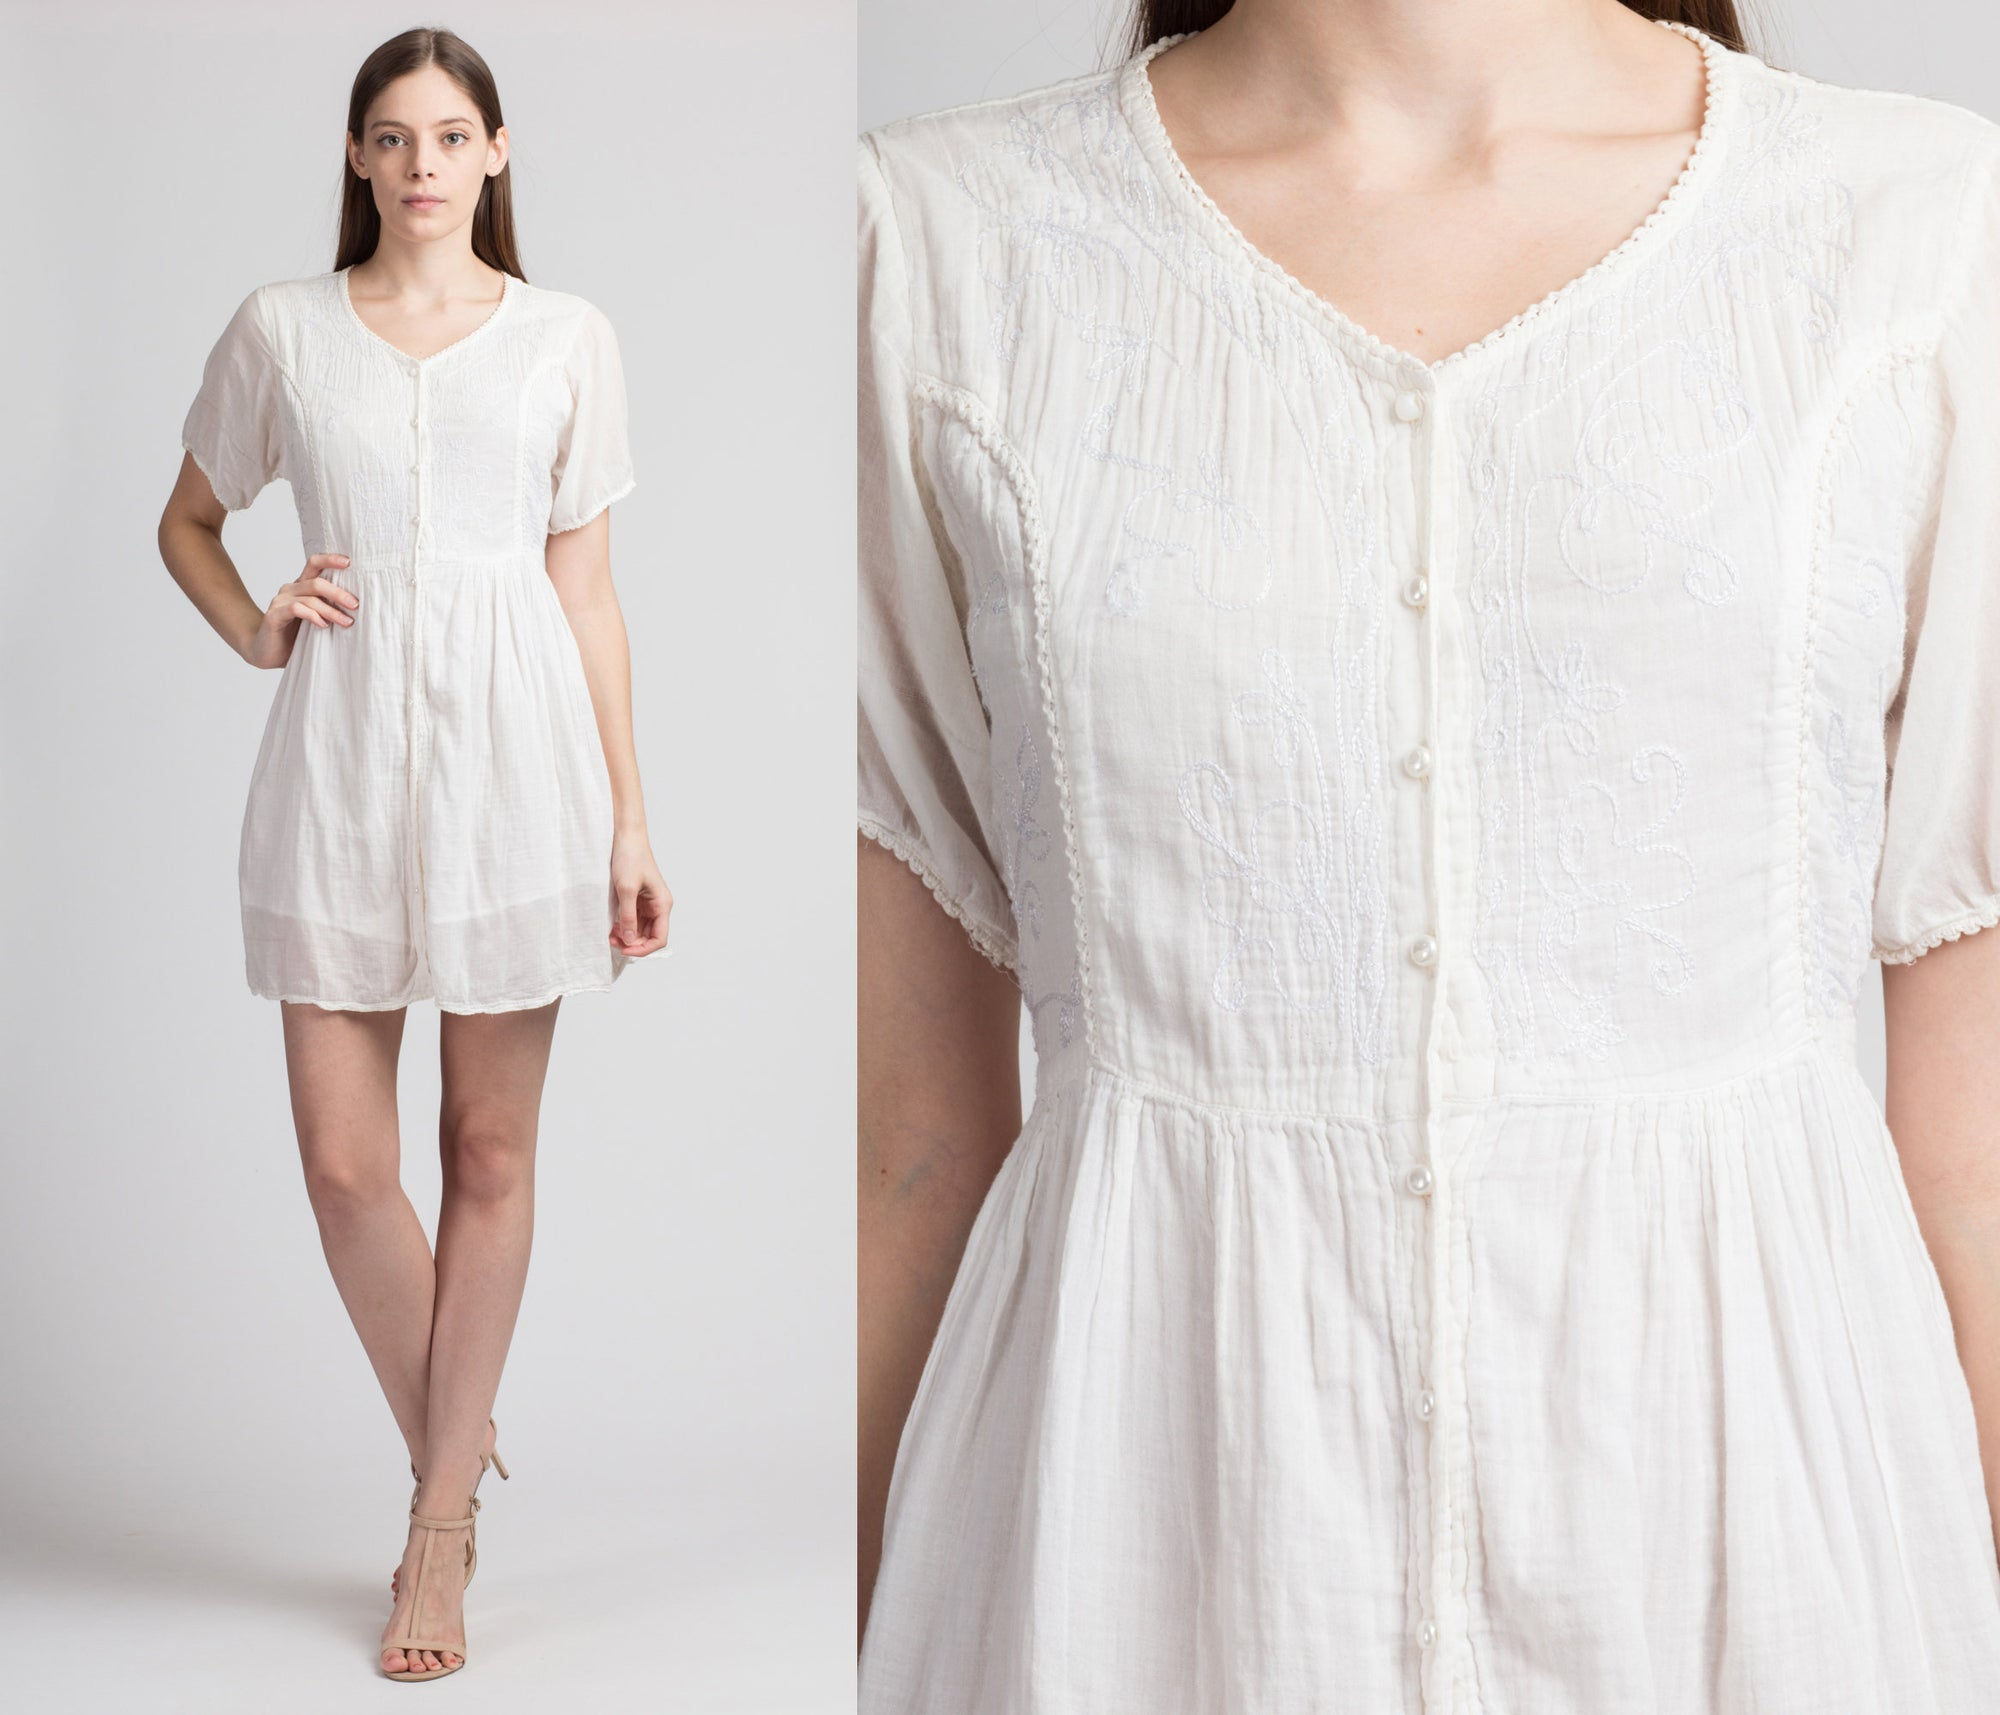 90s Boho White Cotton Mini Dress - Small